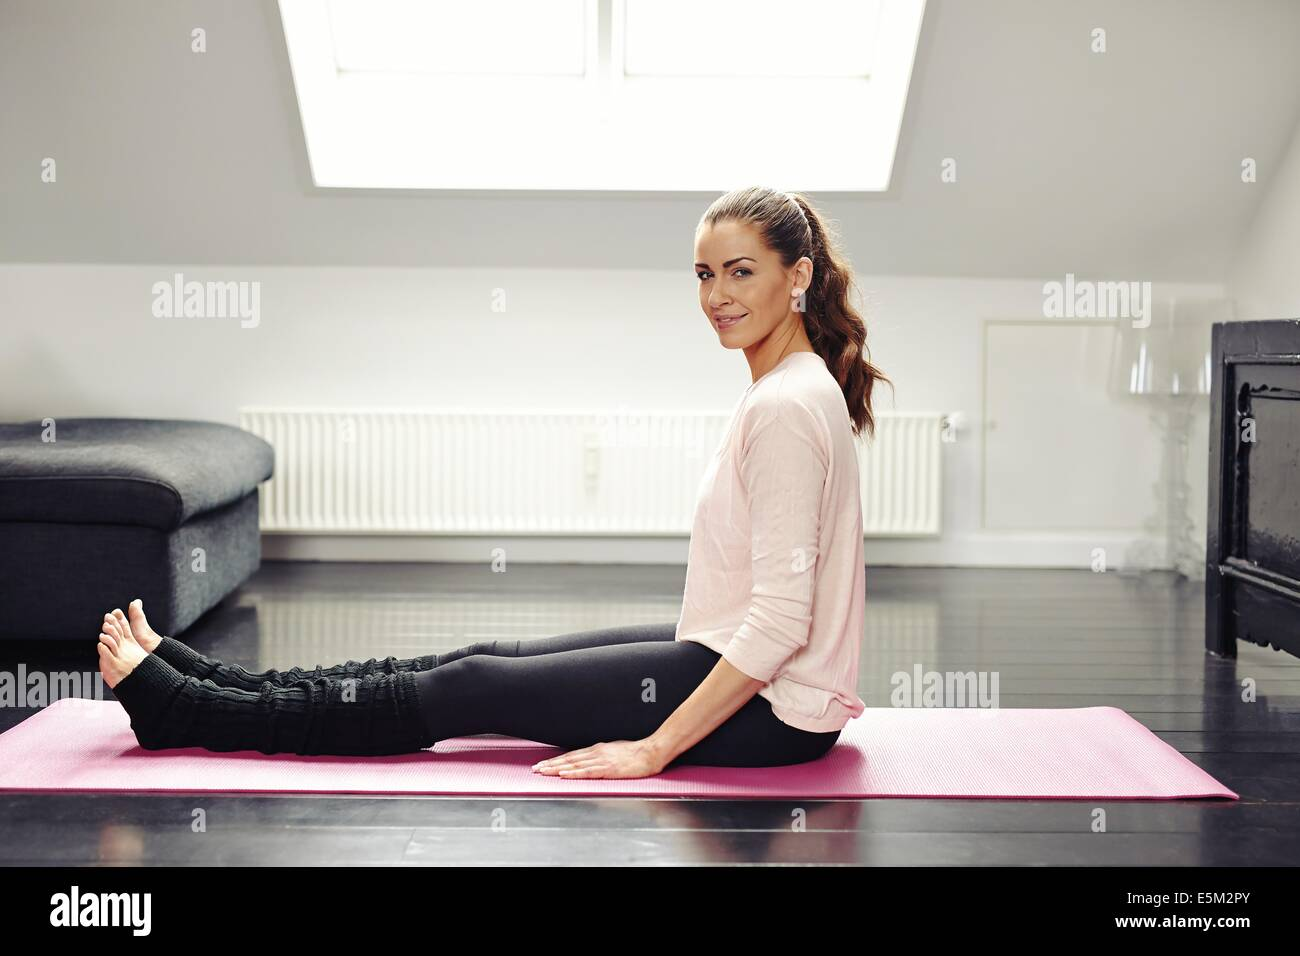 Portrait of fresh young woman sitting on exercise mat looking at camera smiling. Beautiful female exercising in - Stock Image